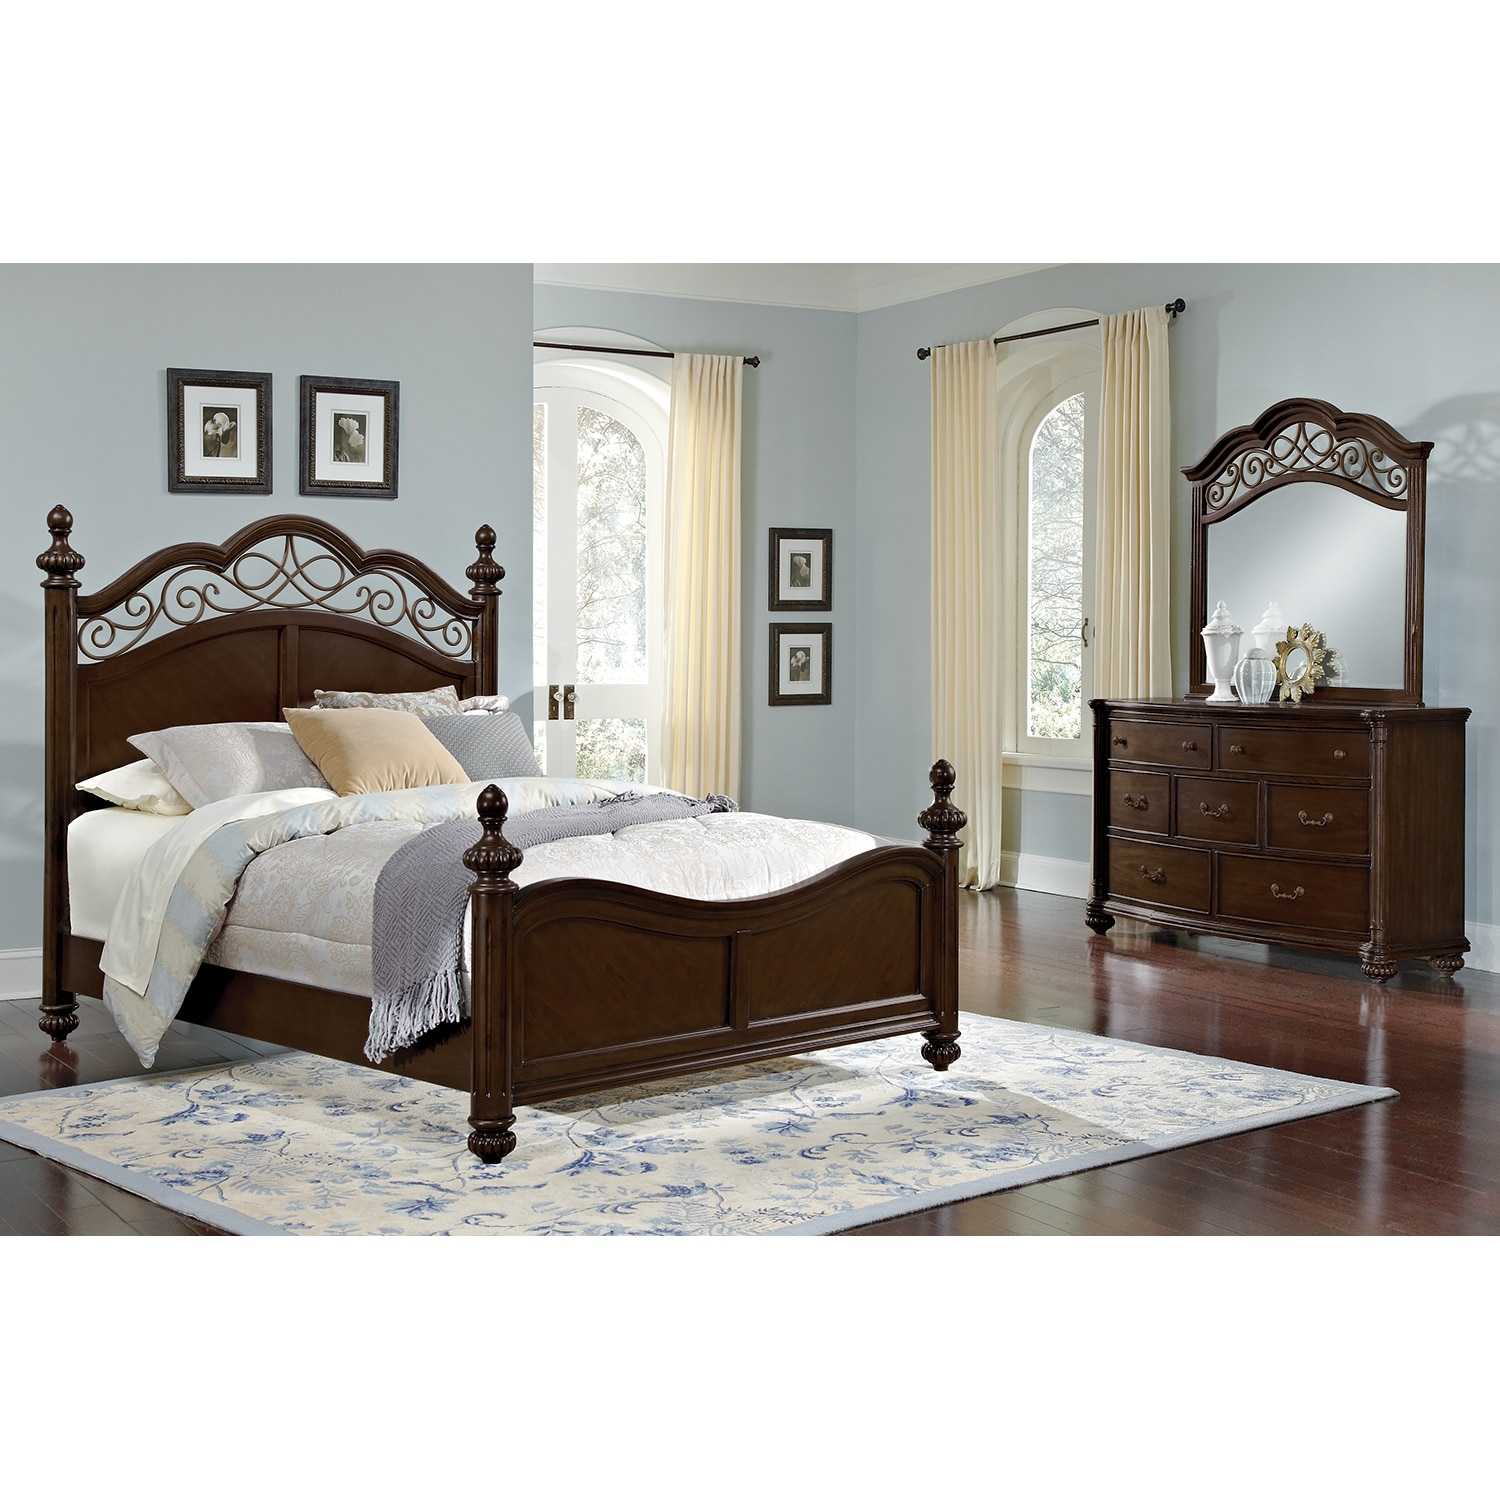 Derbyshire Bedroom 5 Pc. King Bedroom